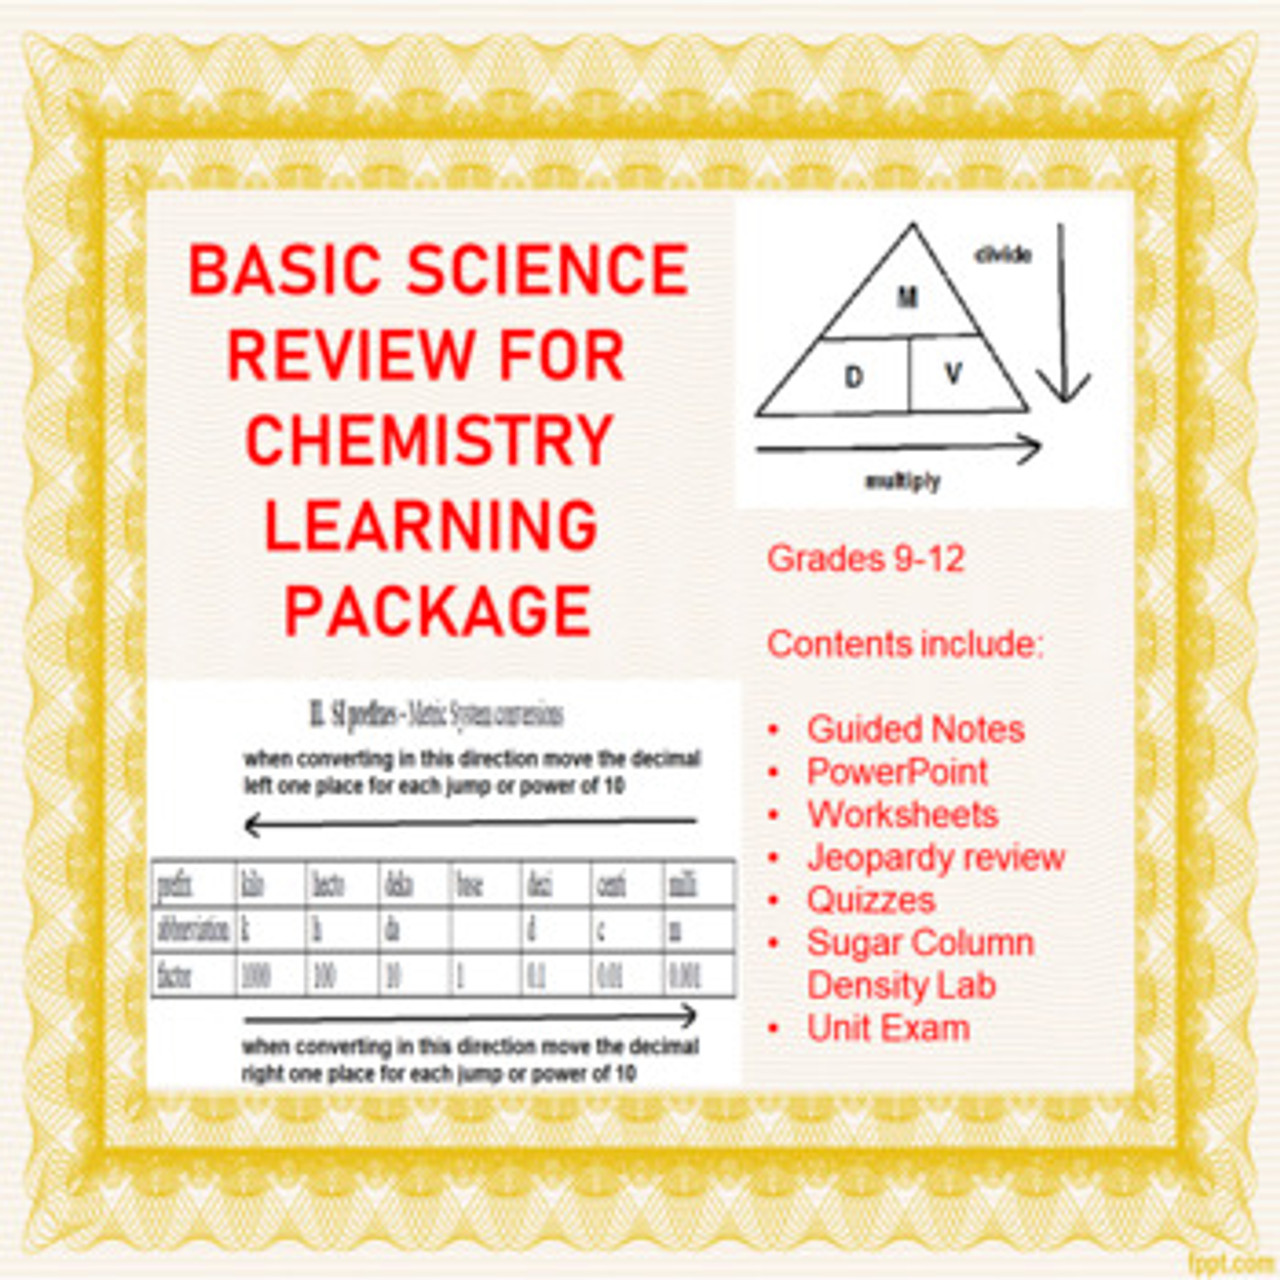 Basic Science Review Learning Activities for Chemistry (Distance Learning)  - Amped Up Learning [ 1280 x 1280 Pixel ]